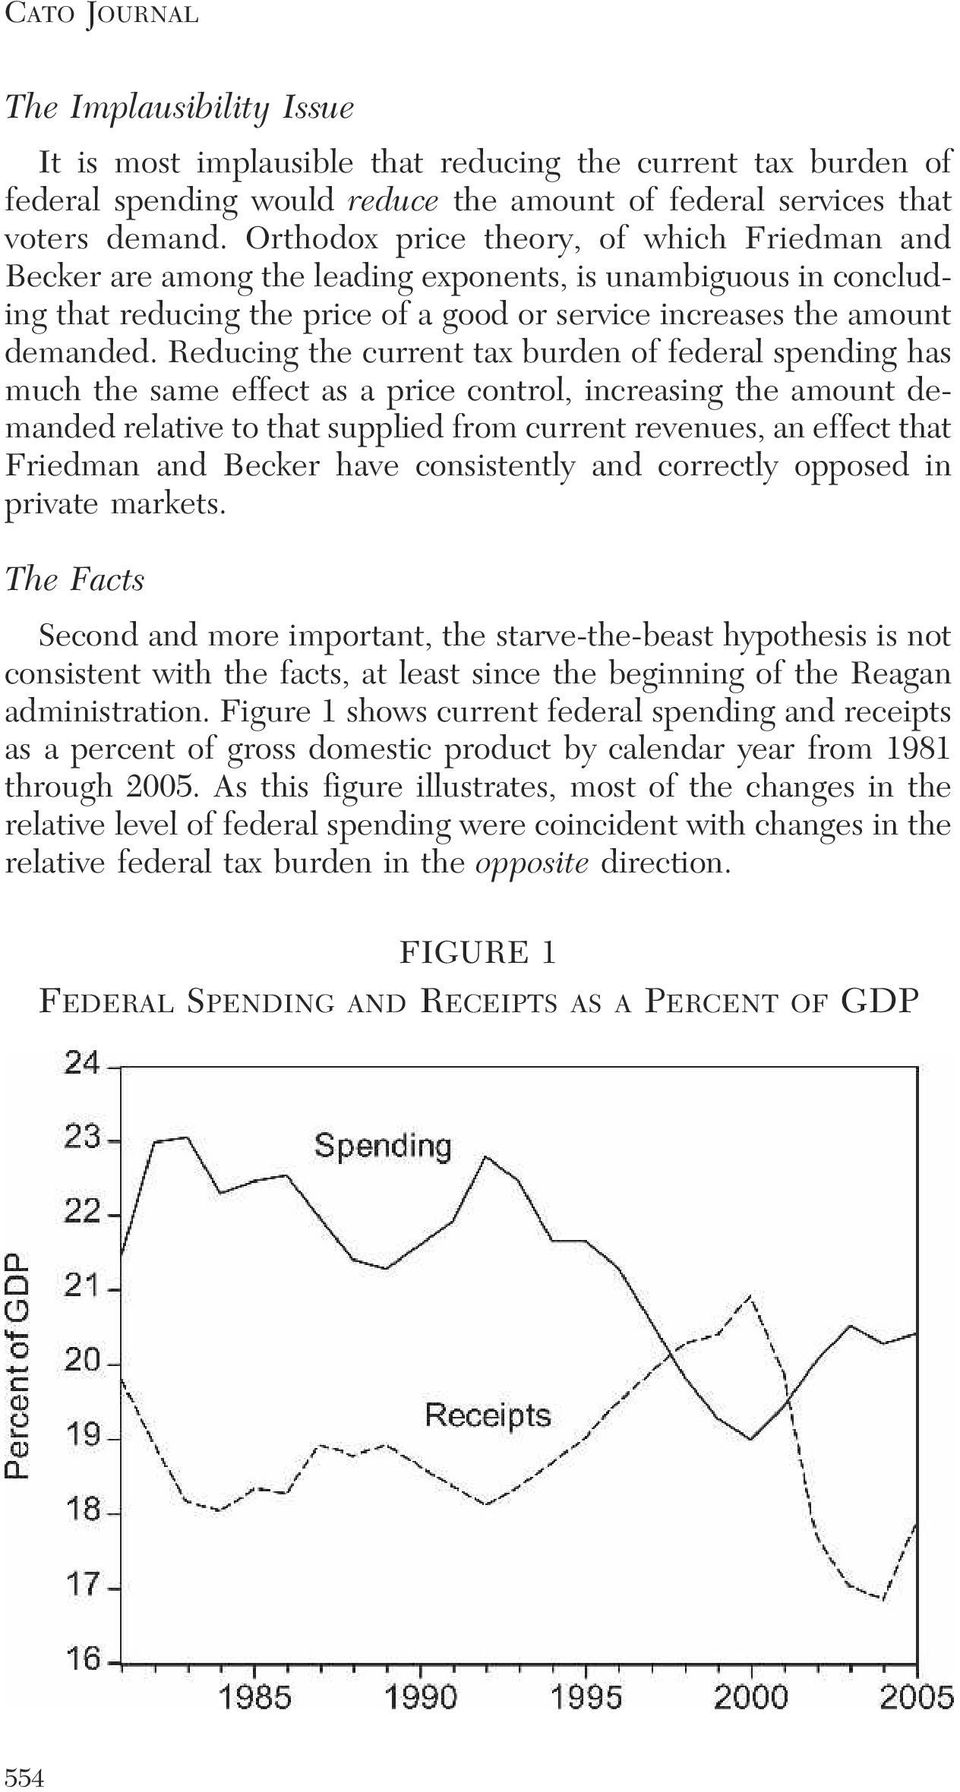 Reducing the current tax burden of federal spending has much the same effect as a price control, increasing the amount demanded relative to that supplied from current revenues, an effect that